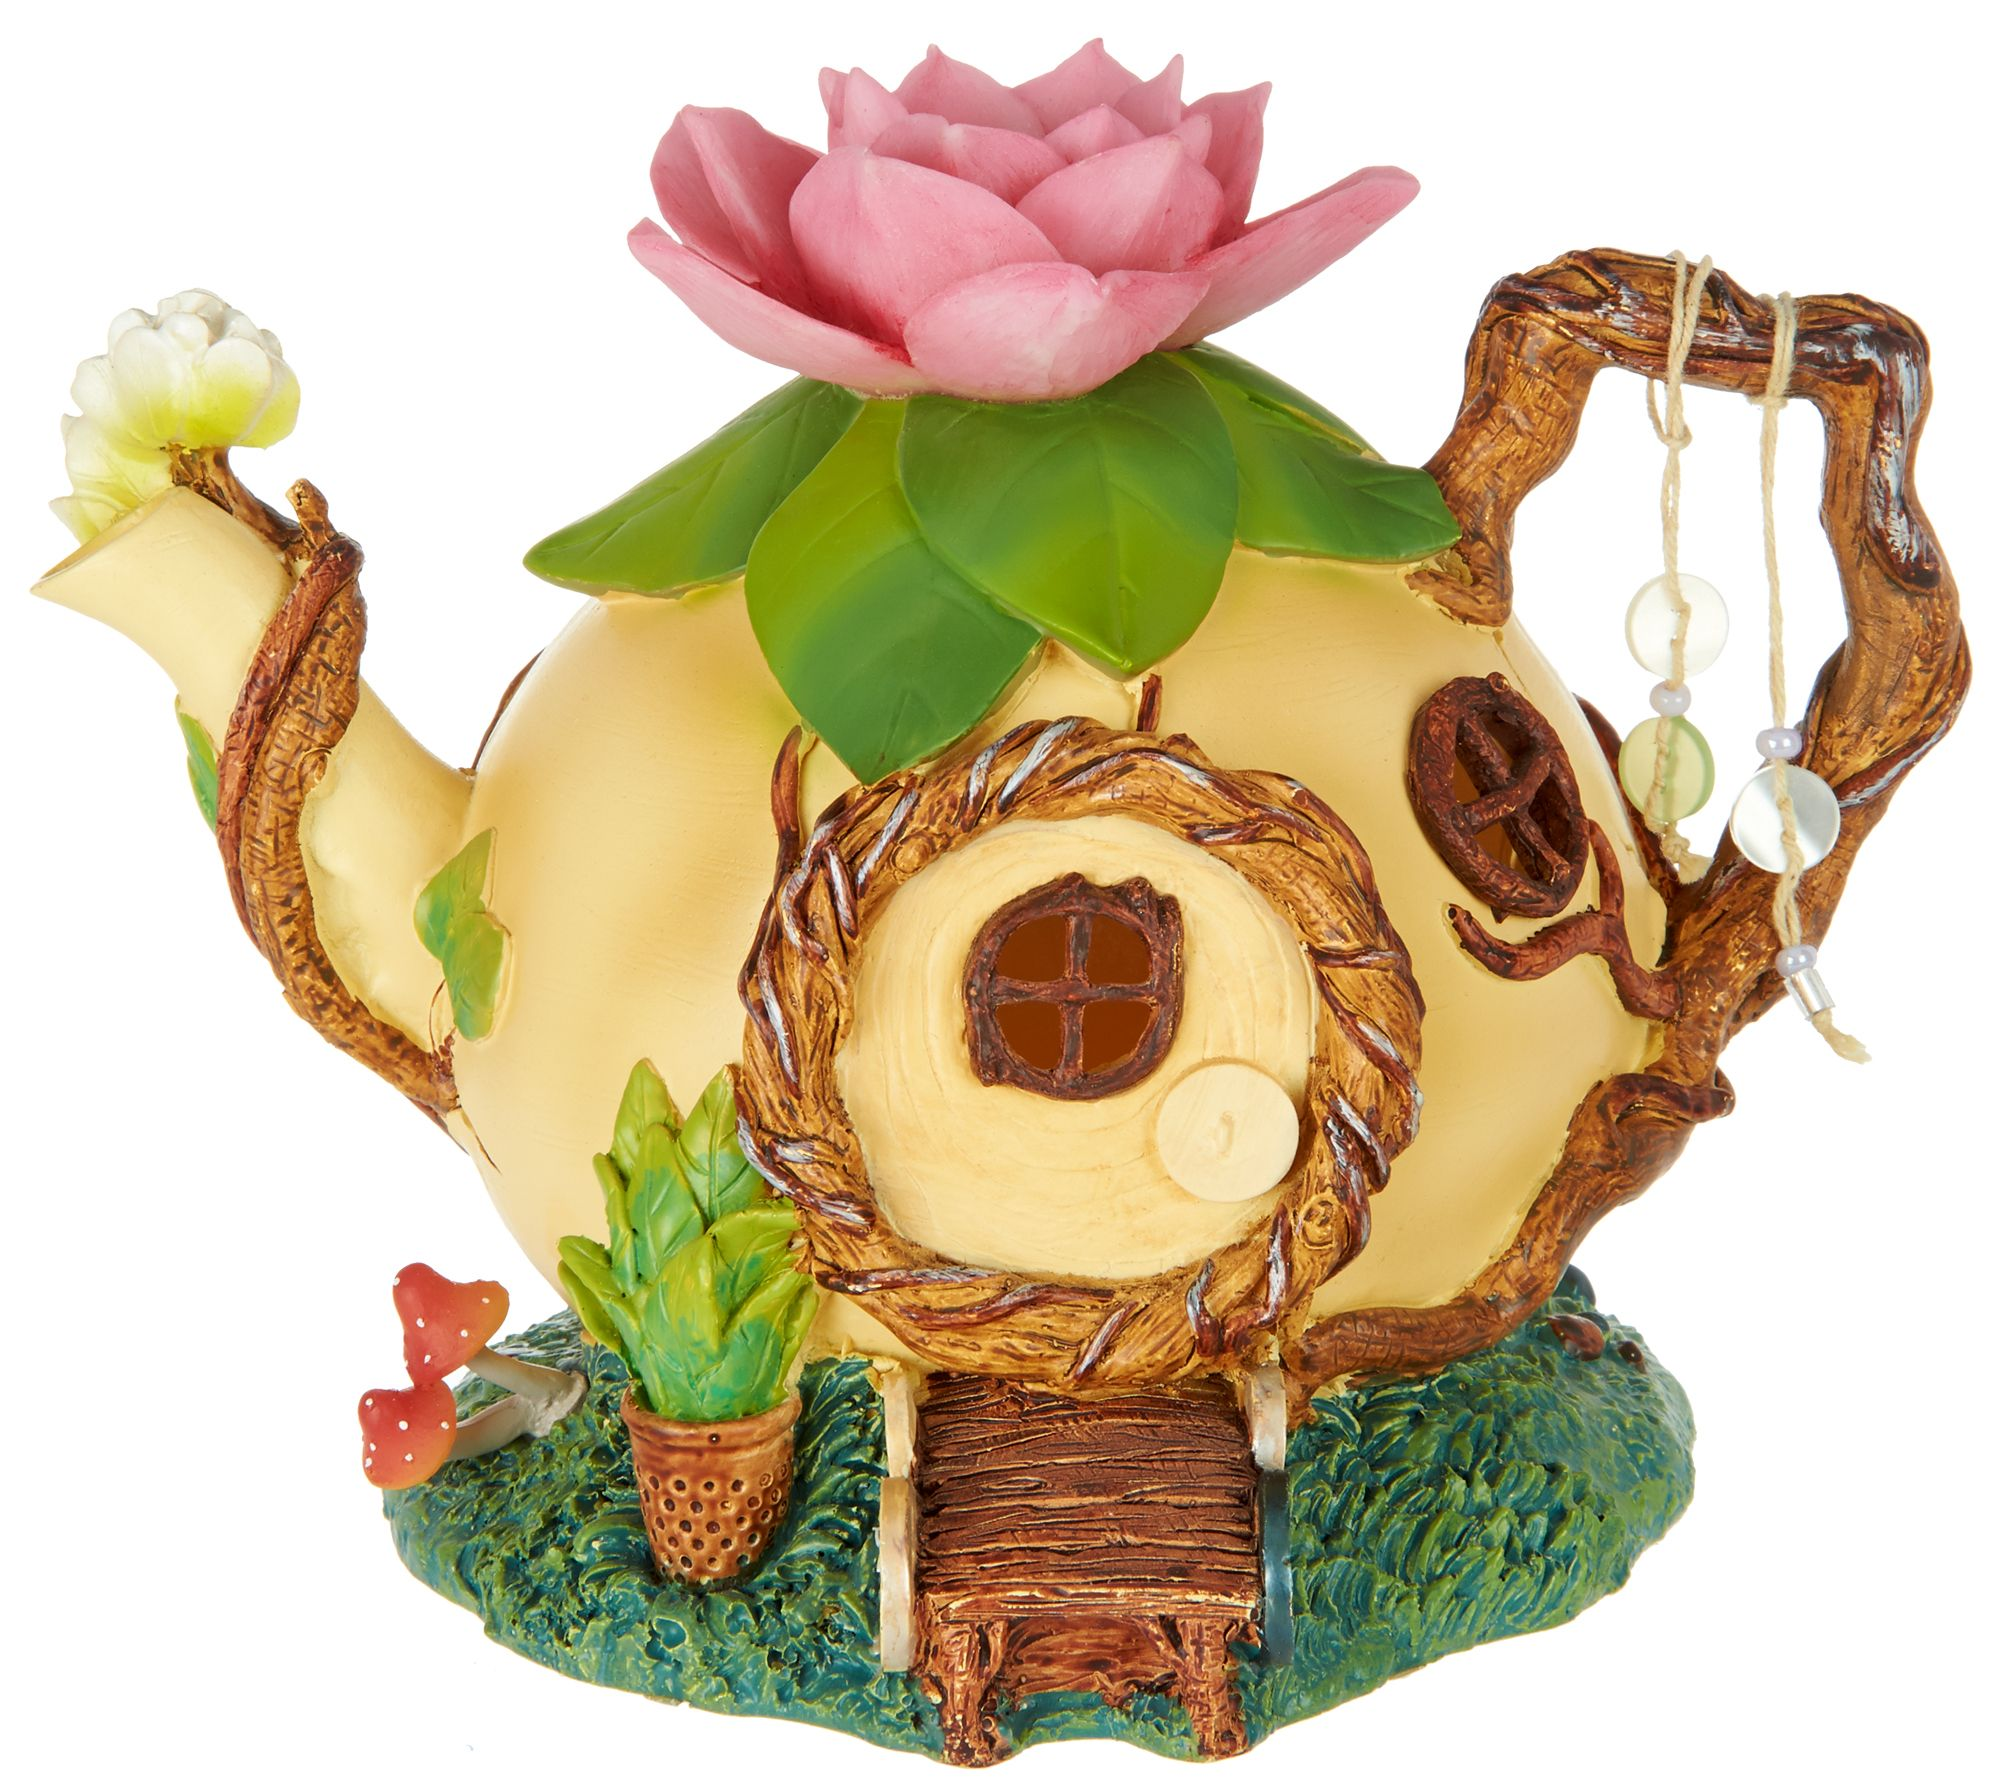 Hallmark Indoor/Outdoor Fairy Garden House   Page 1 U2014 QVC.com